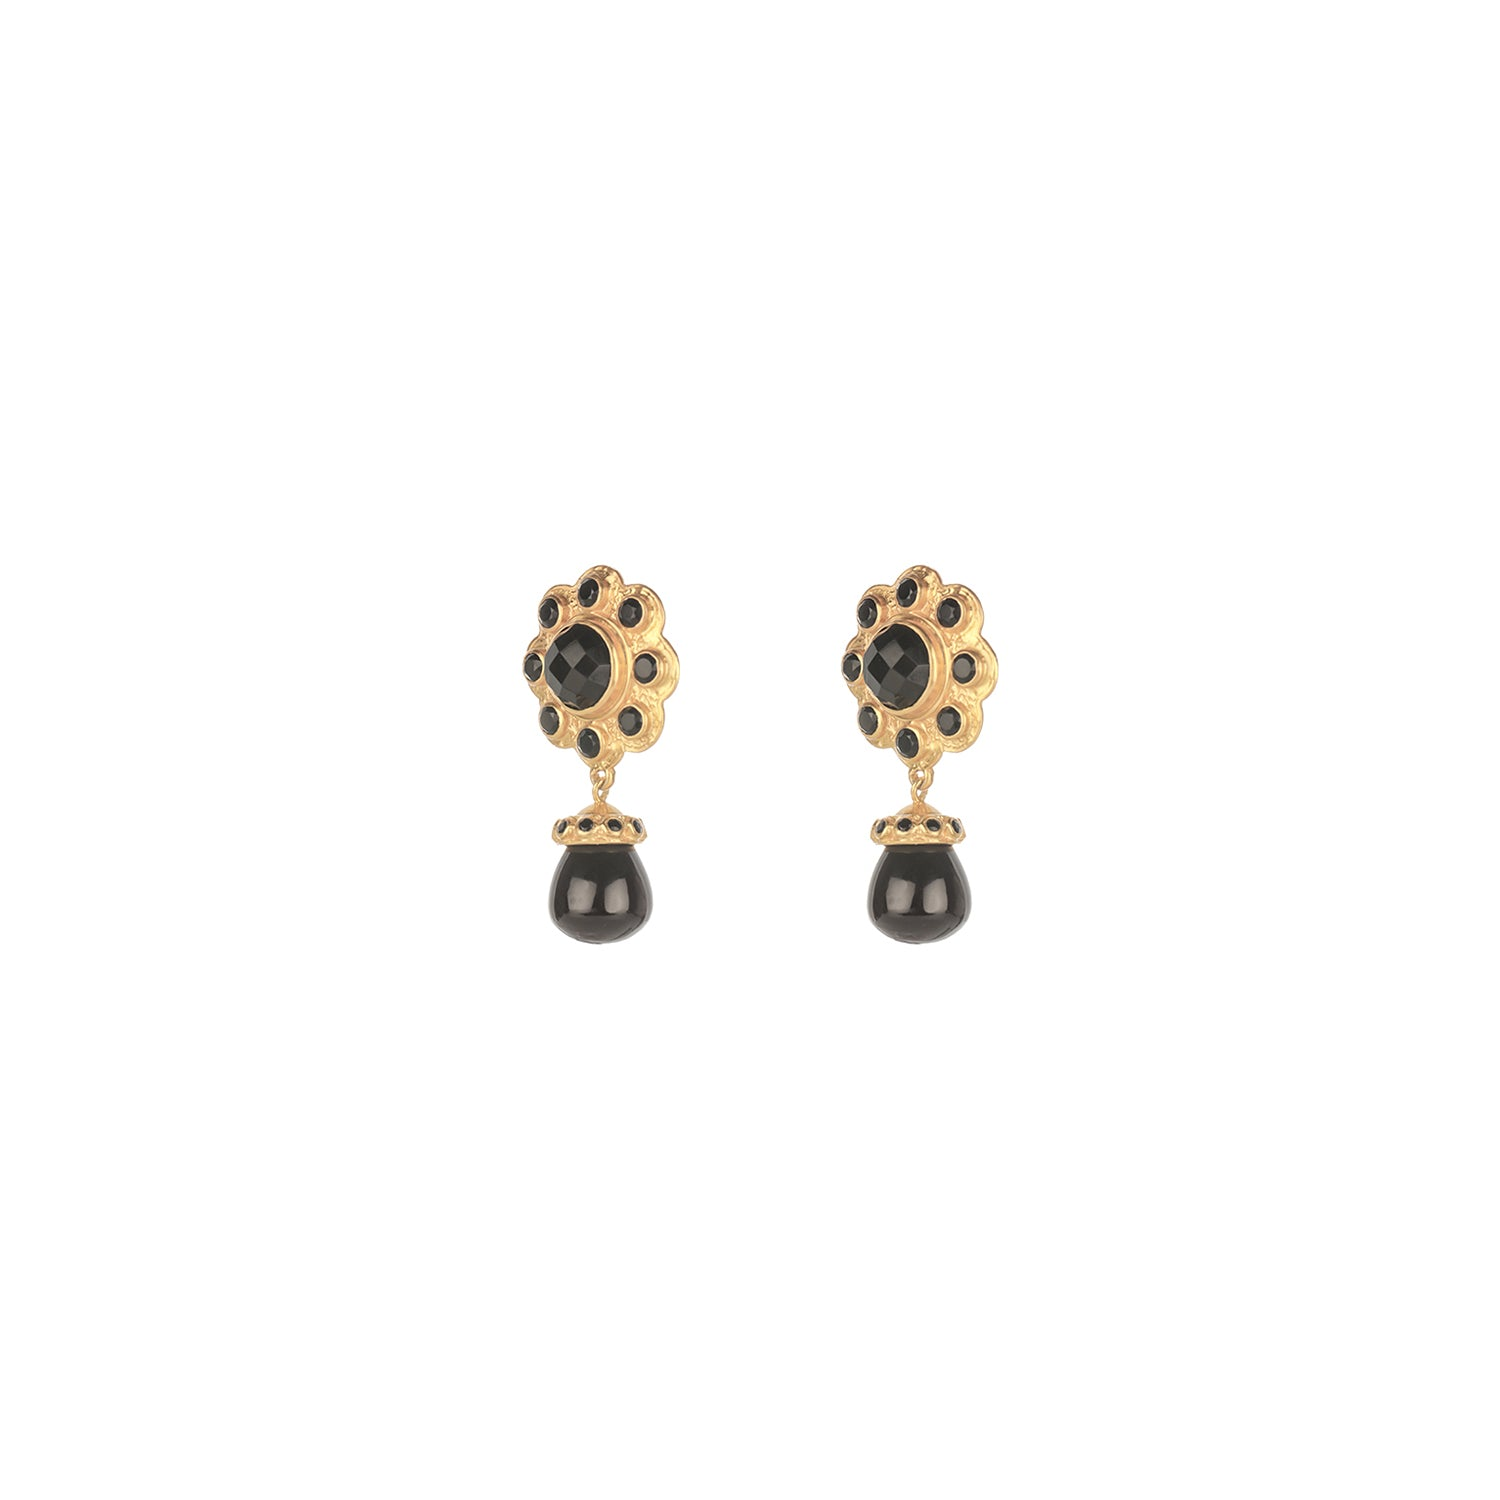 Antionette Earrings Black Onyx